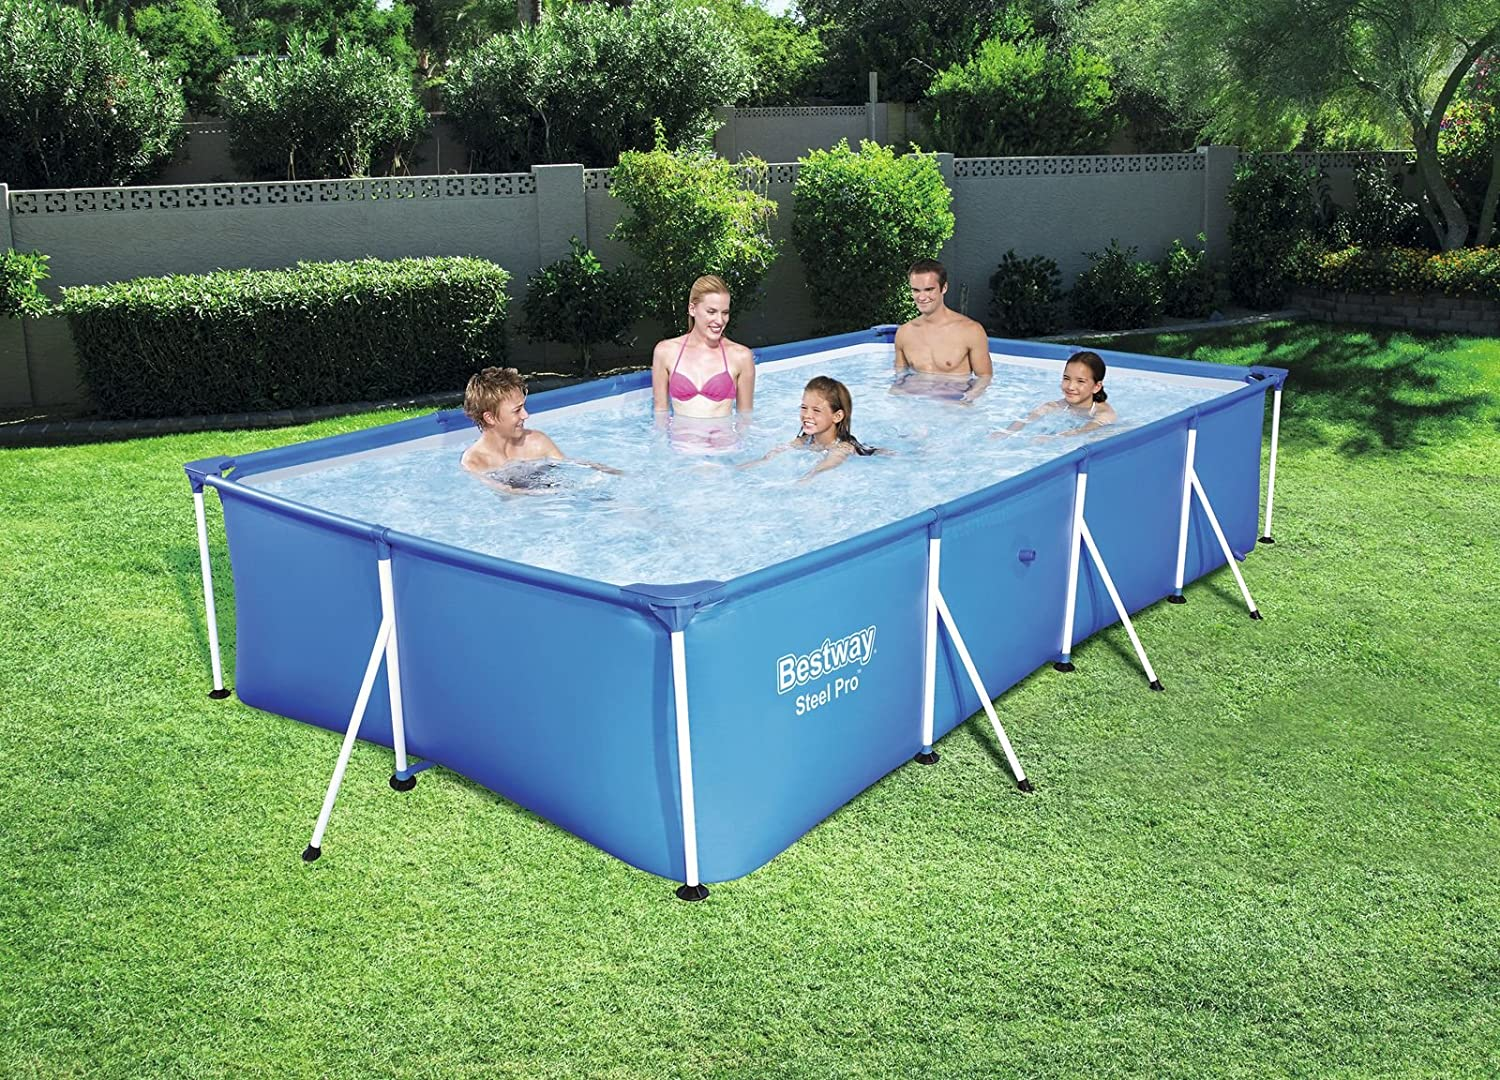 Bestway 56405 - Piscina Desmontable Tubular Infantil Bestway Family Splash Frame Pool (400 x 211 x 81 cm) Capacidad: 5.700 litros: Amazon.es: Jardín